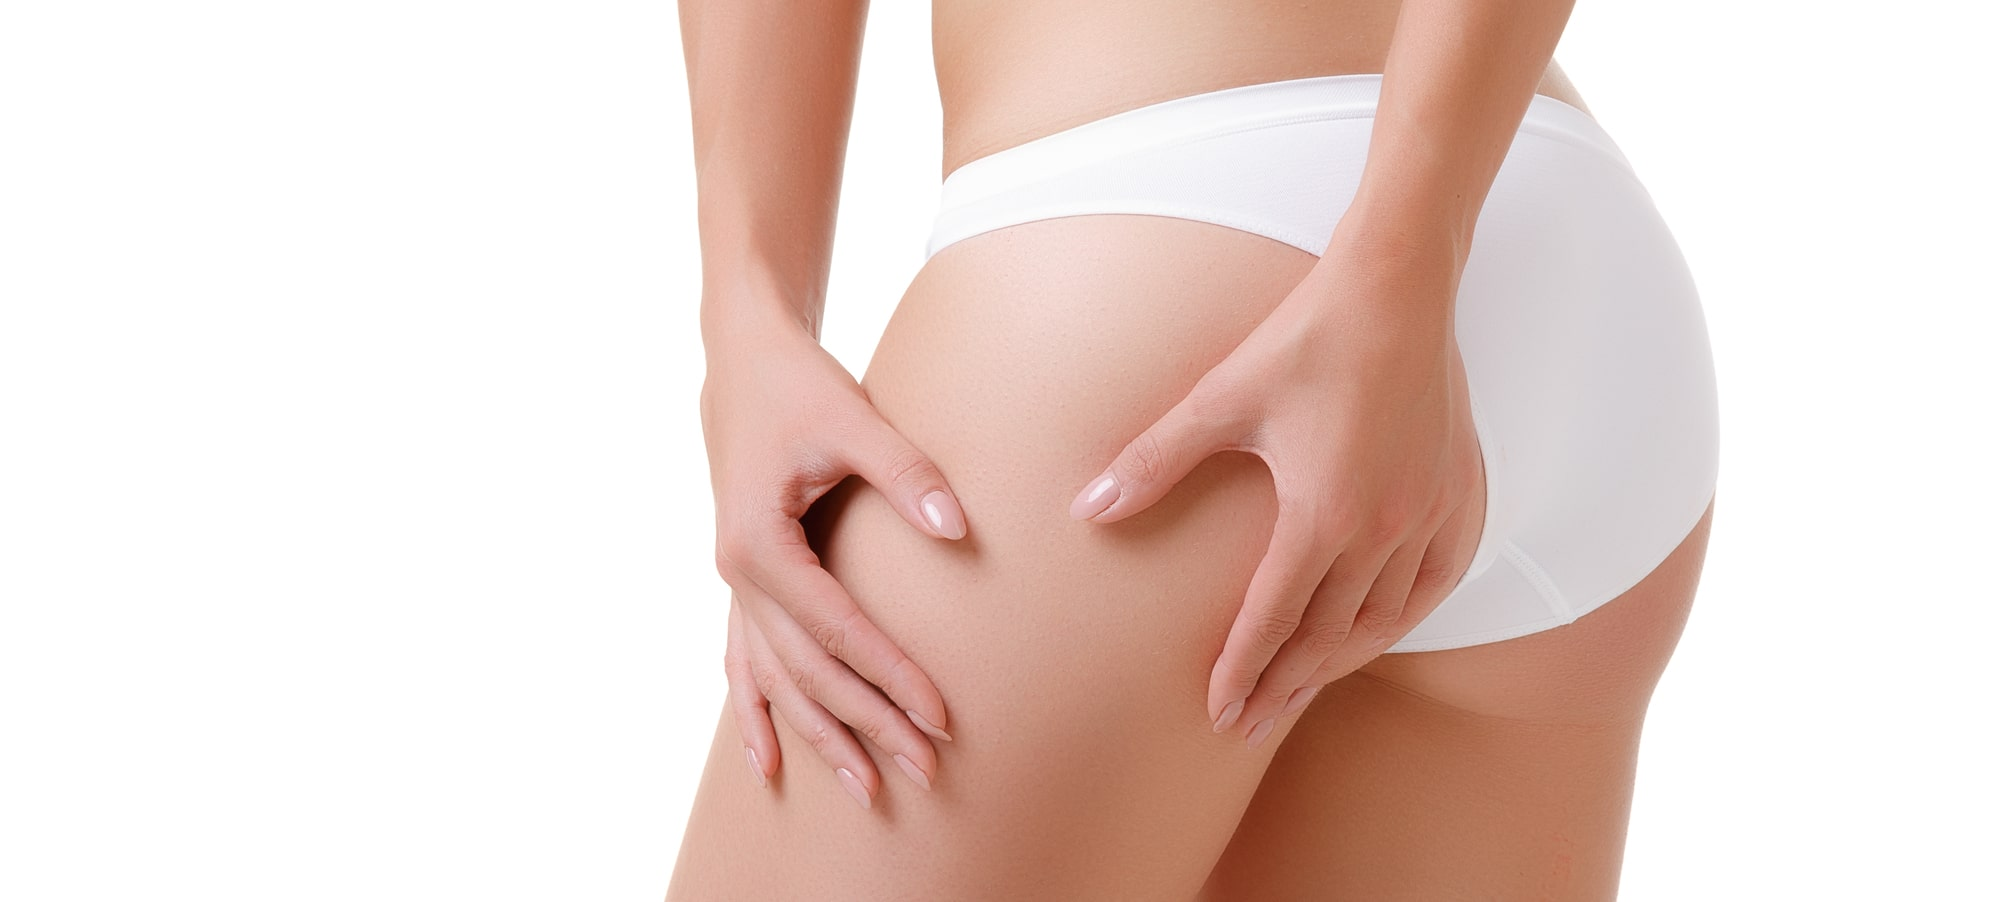 Learn which type of thigh lift procedure is best for you